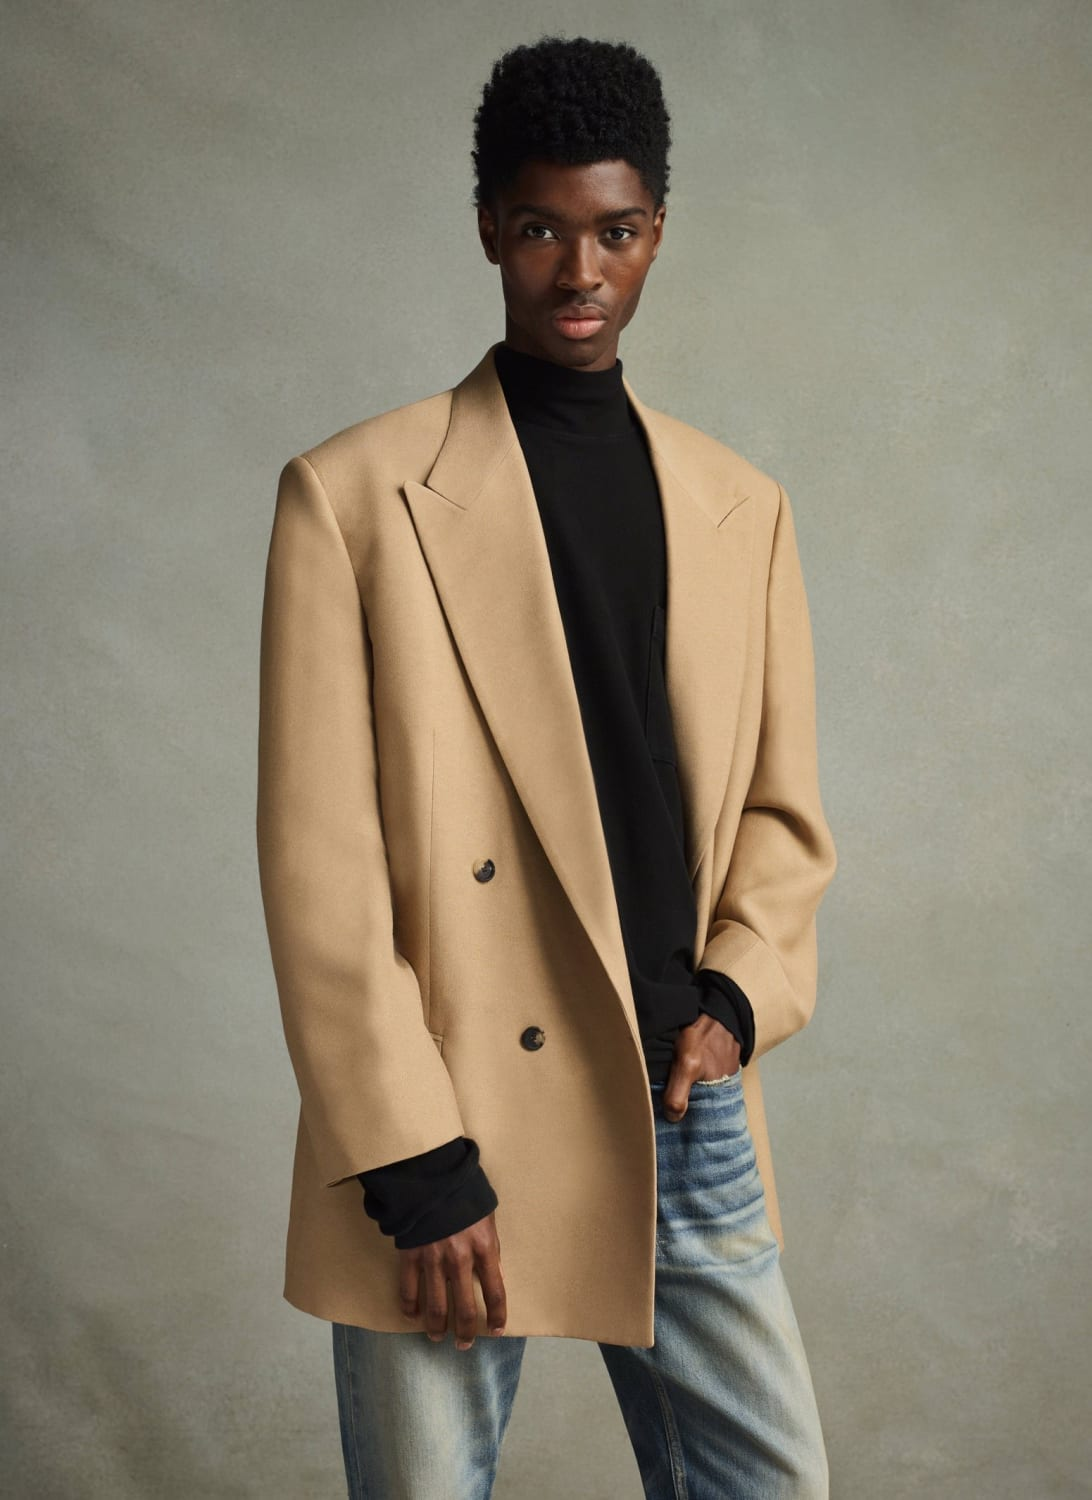 Seventh Collection Lookbook Look 25